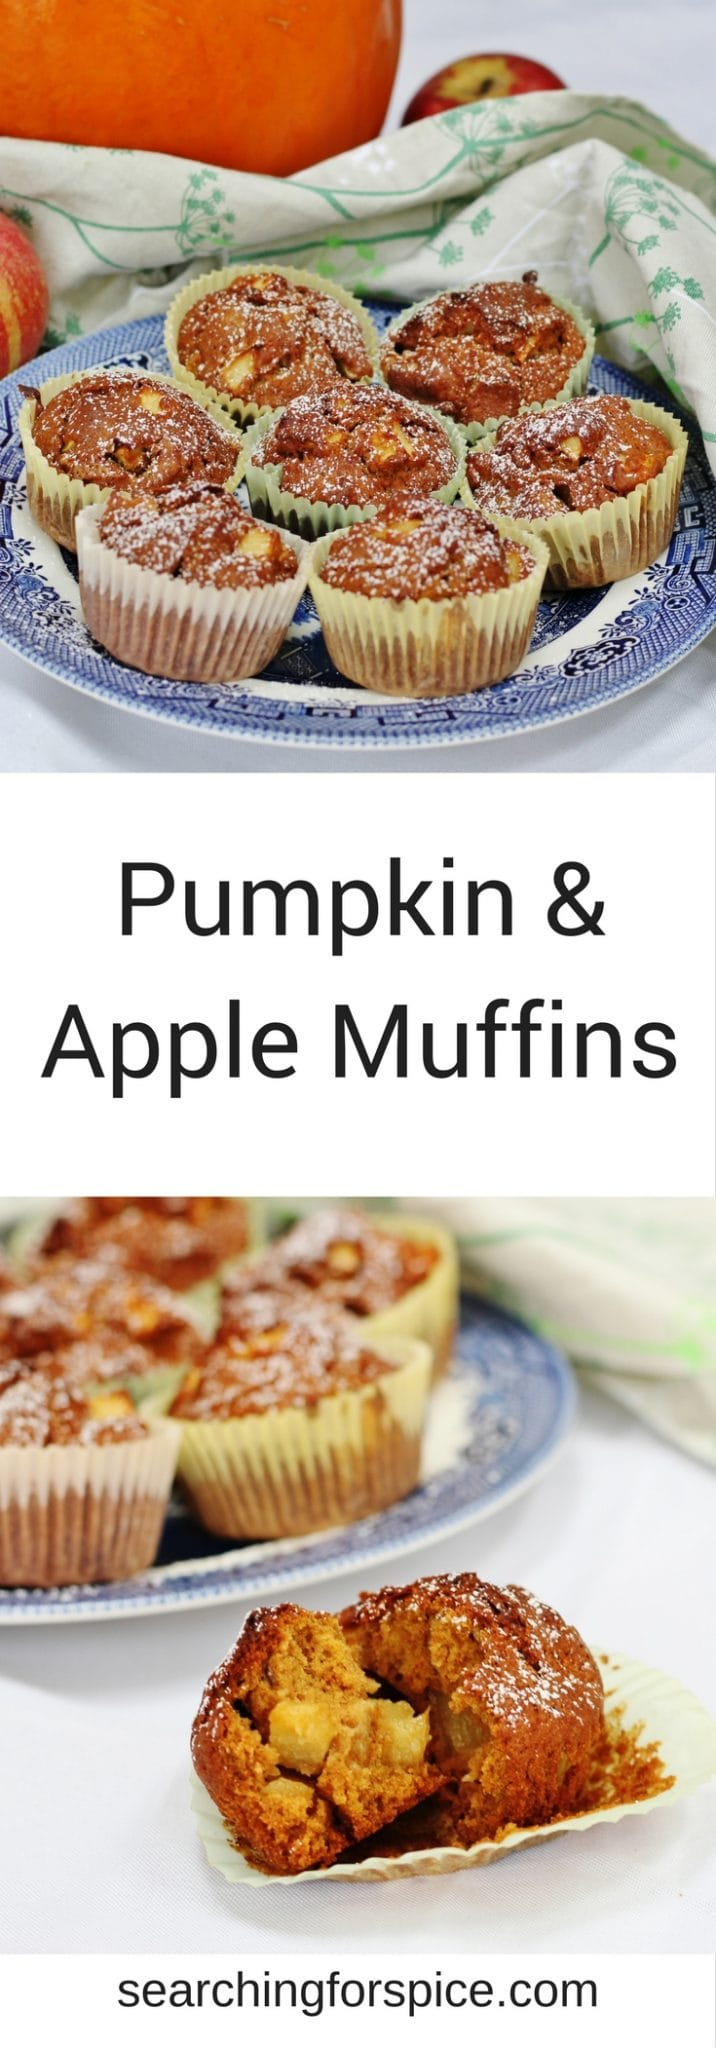 Make these pumpkin and apple muffins with seasonal apples and pumpkin puree. They make a great after-school snack or even breakfast #muffins #apple #pumpkinrecipes #baking #seasonal